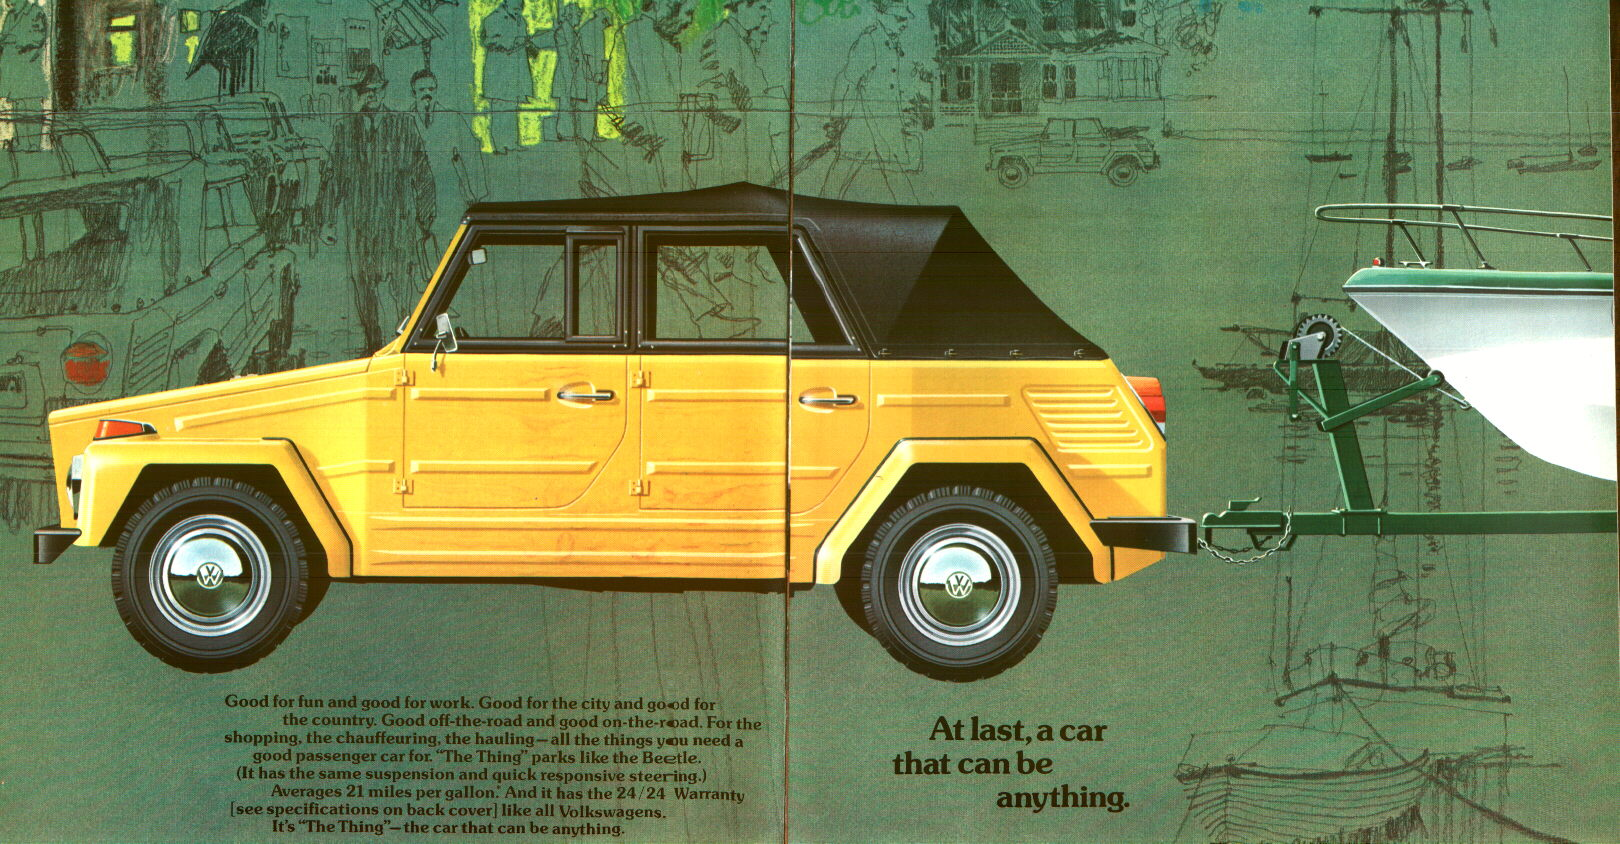 VW Thing Sales Brochures DasTank DasTankcom VW Thing Type 181